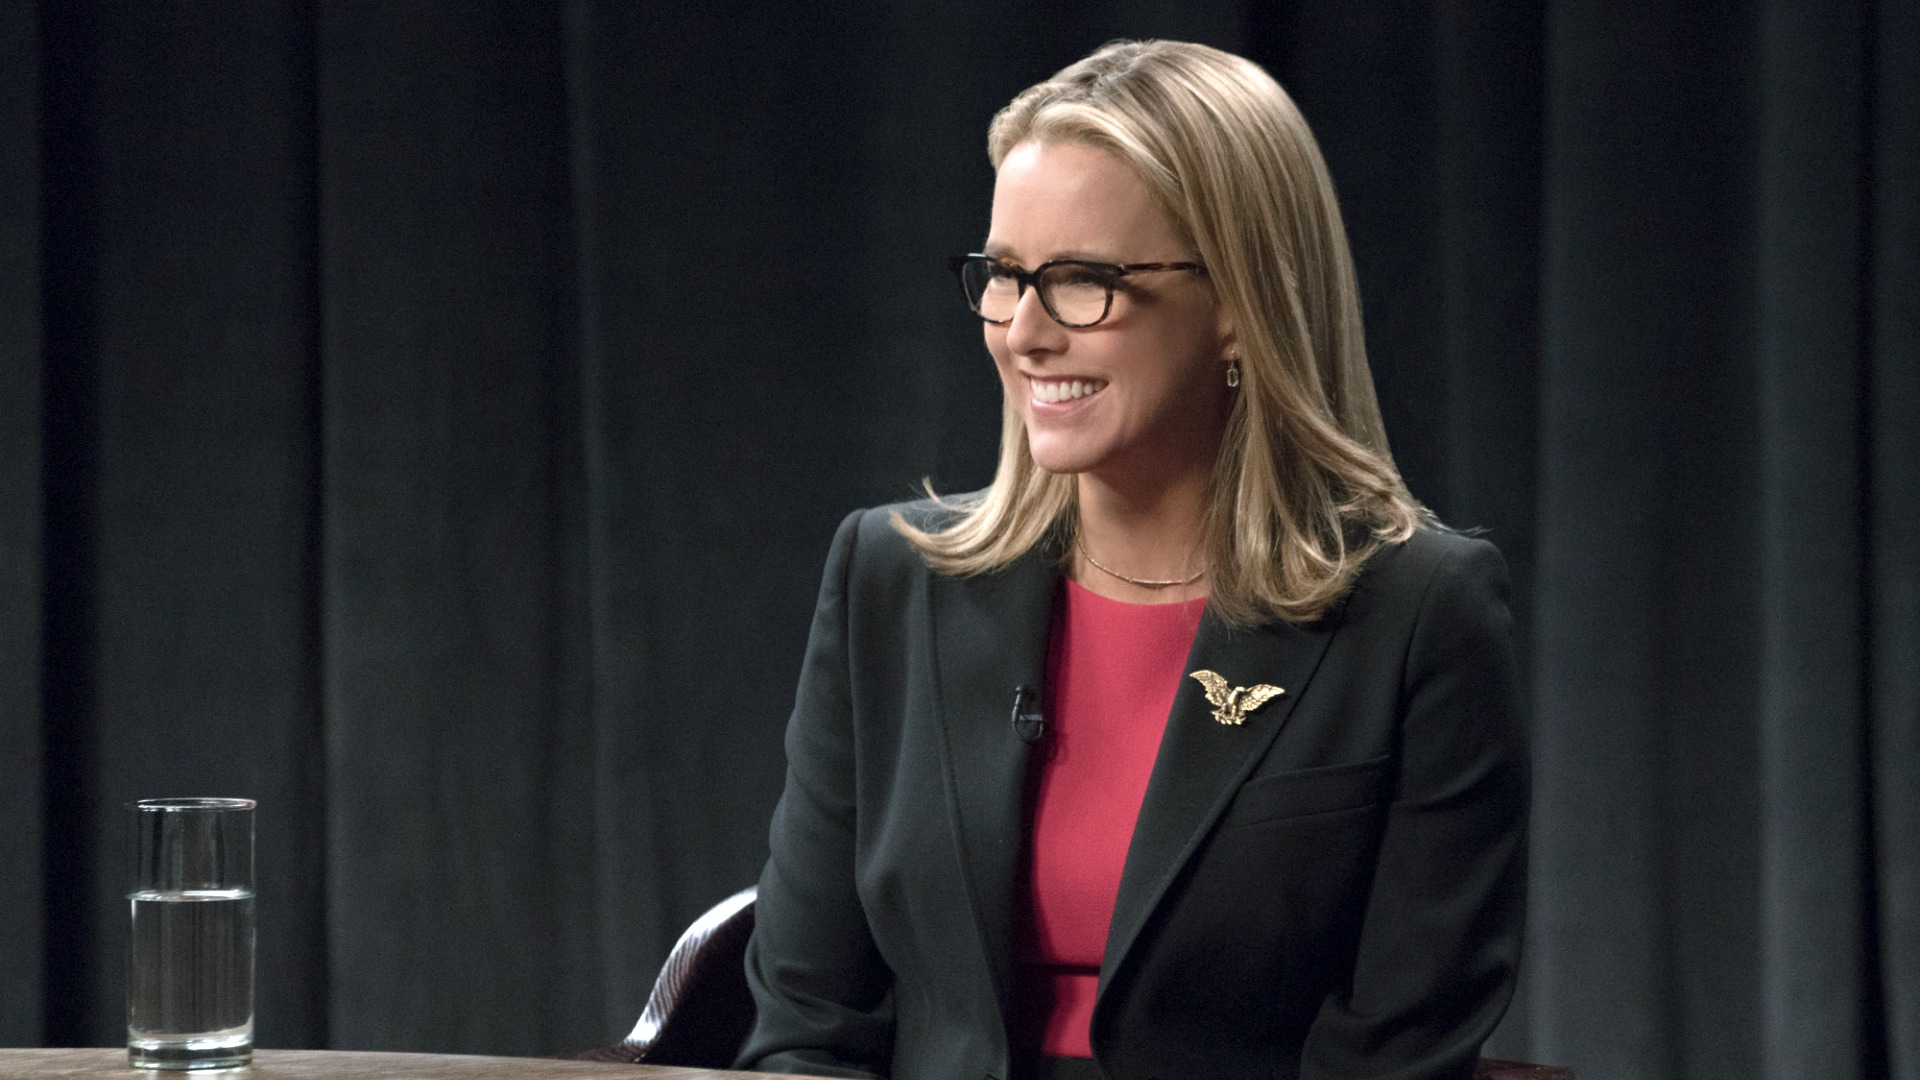 When the going gets tough, think like Madam Secretary.